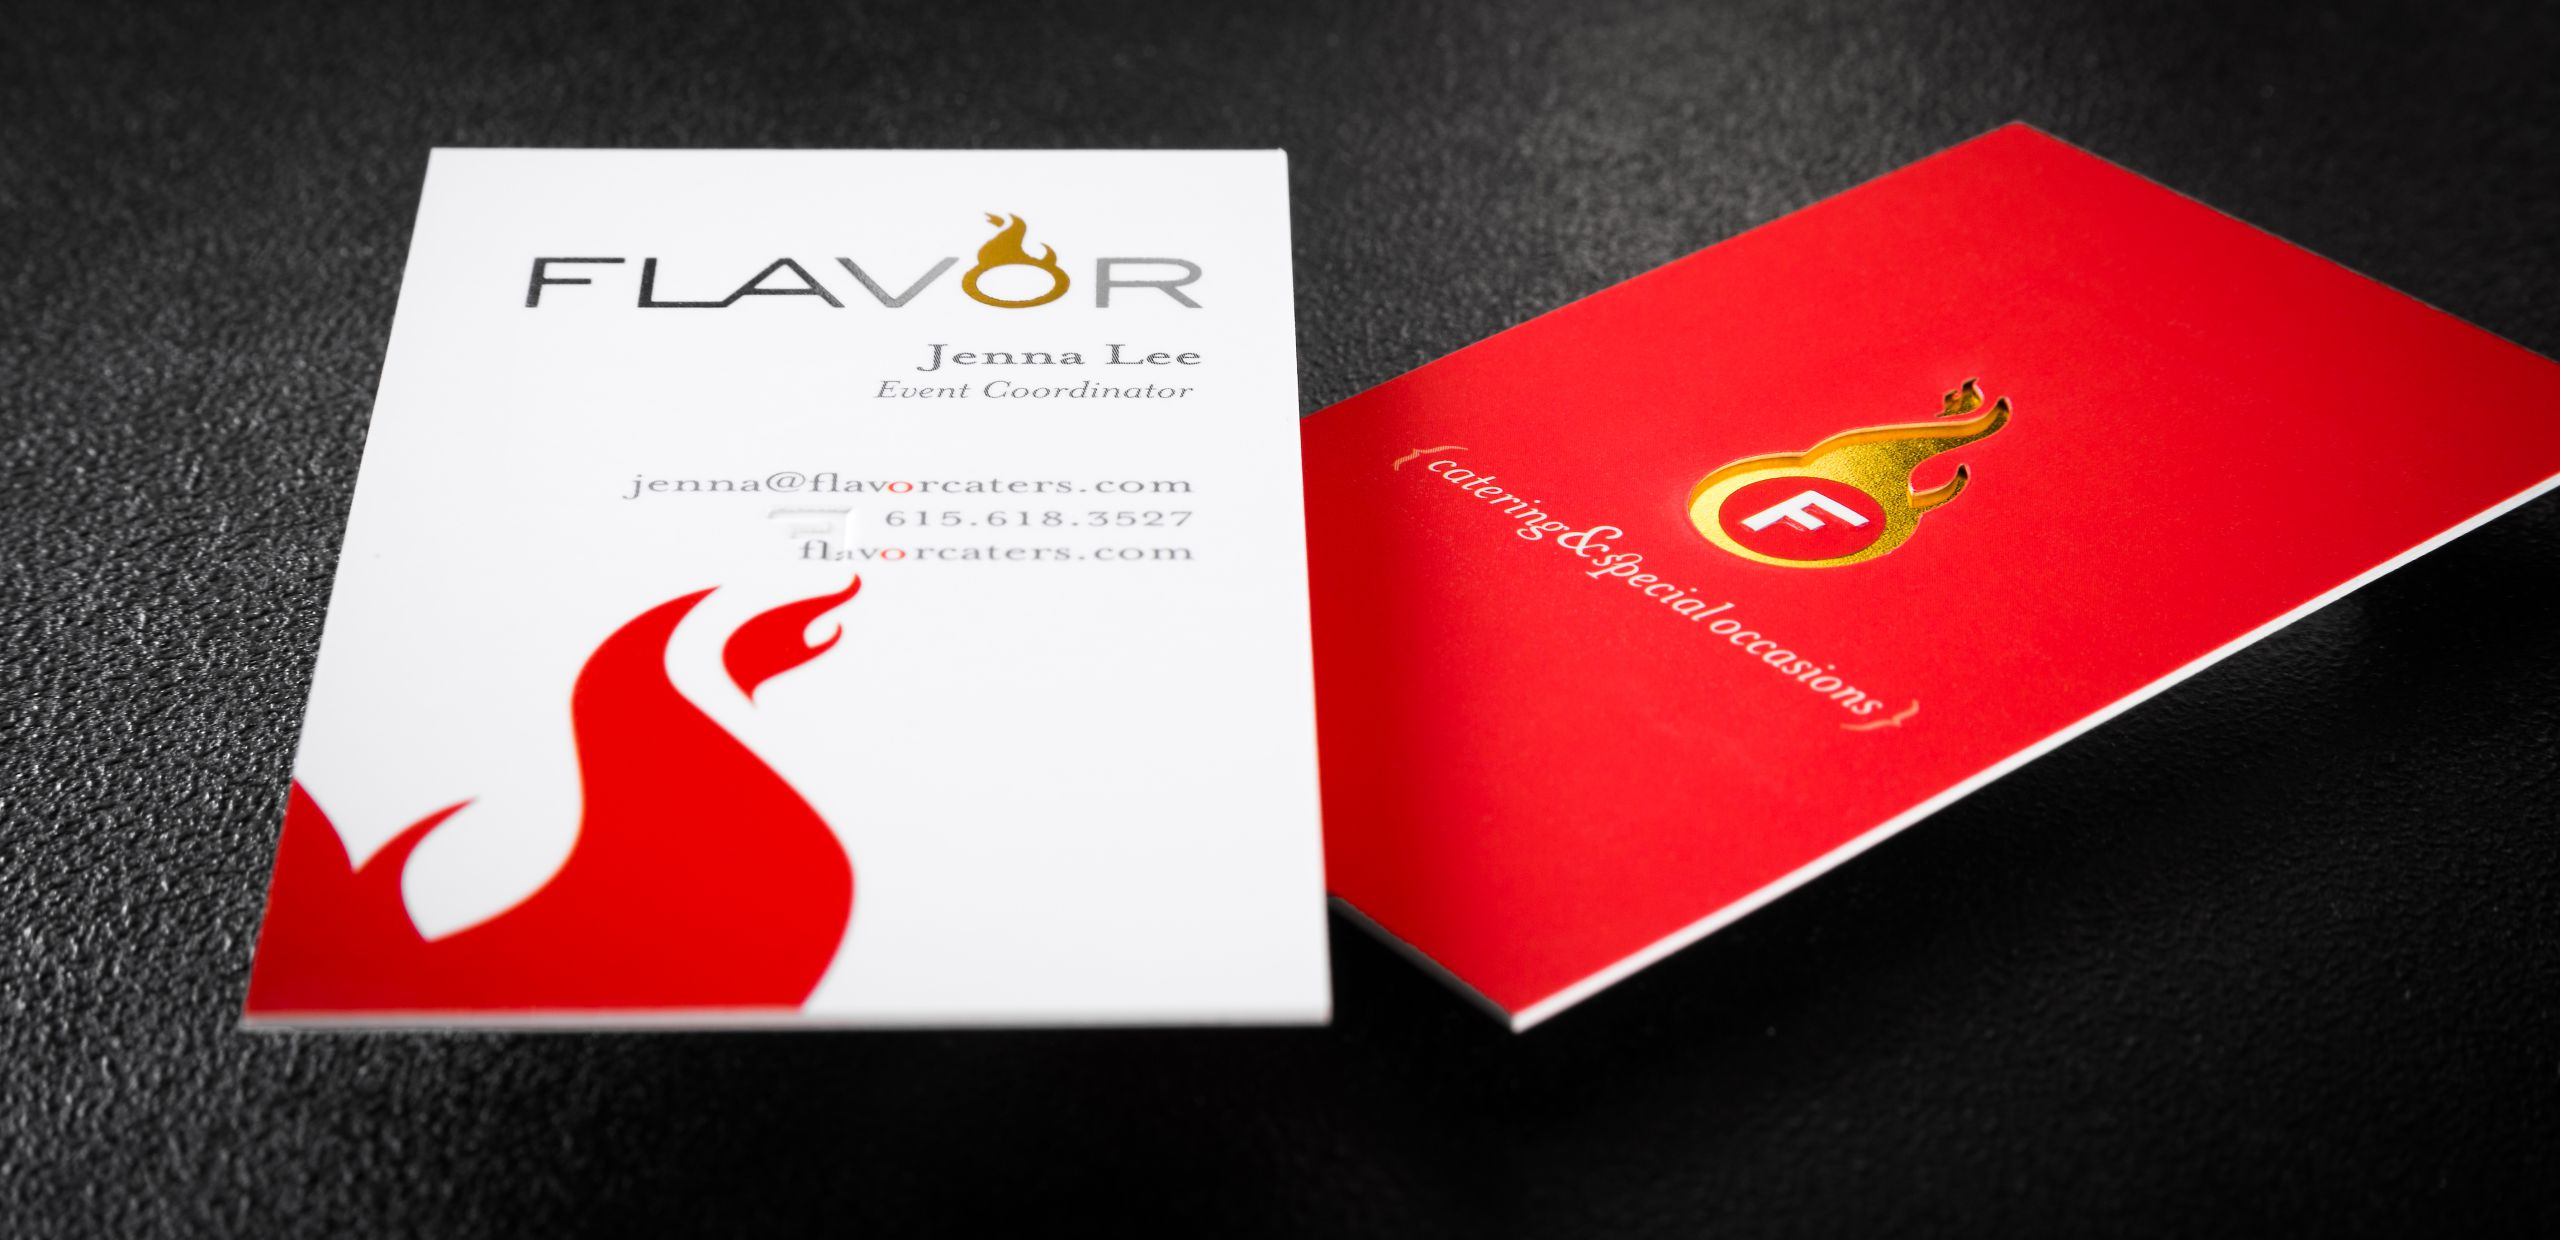 Custom online business card plastic card printing 4colorprint 32pt suede laminated cards custom die cut gold foil embossing reheart